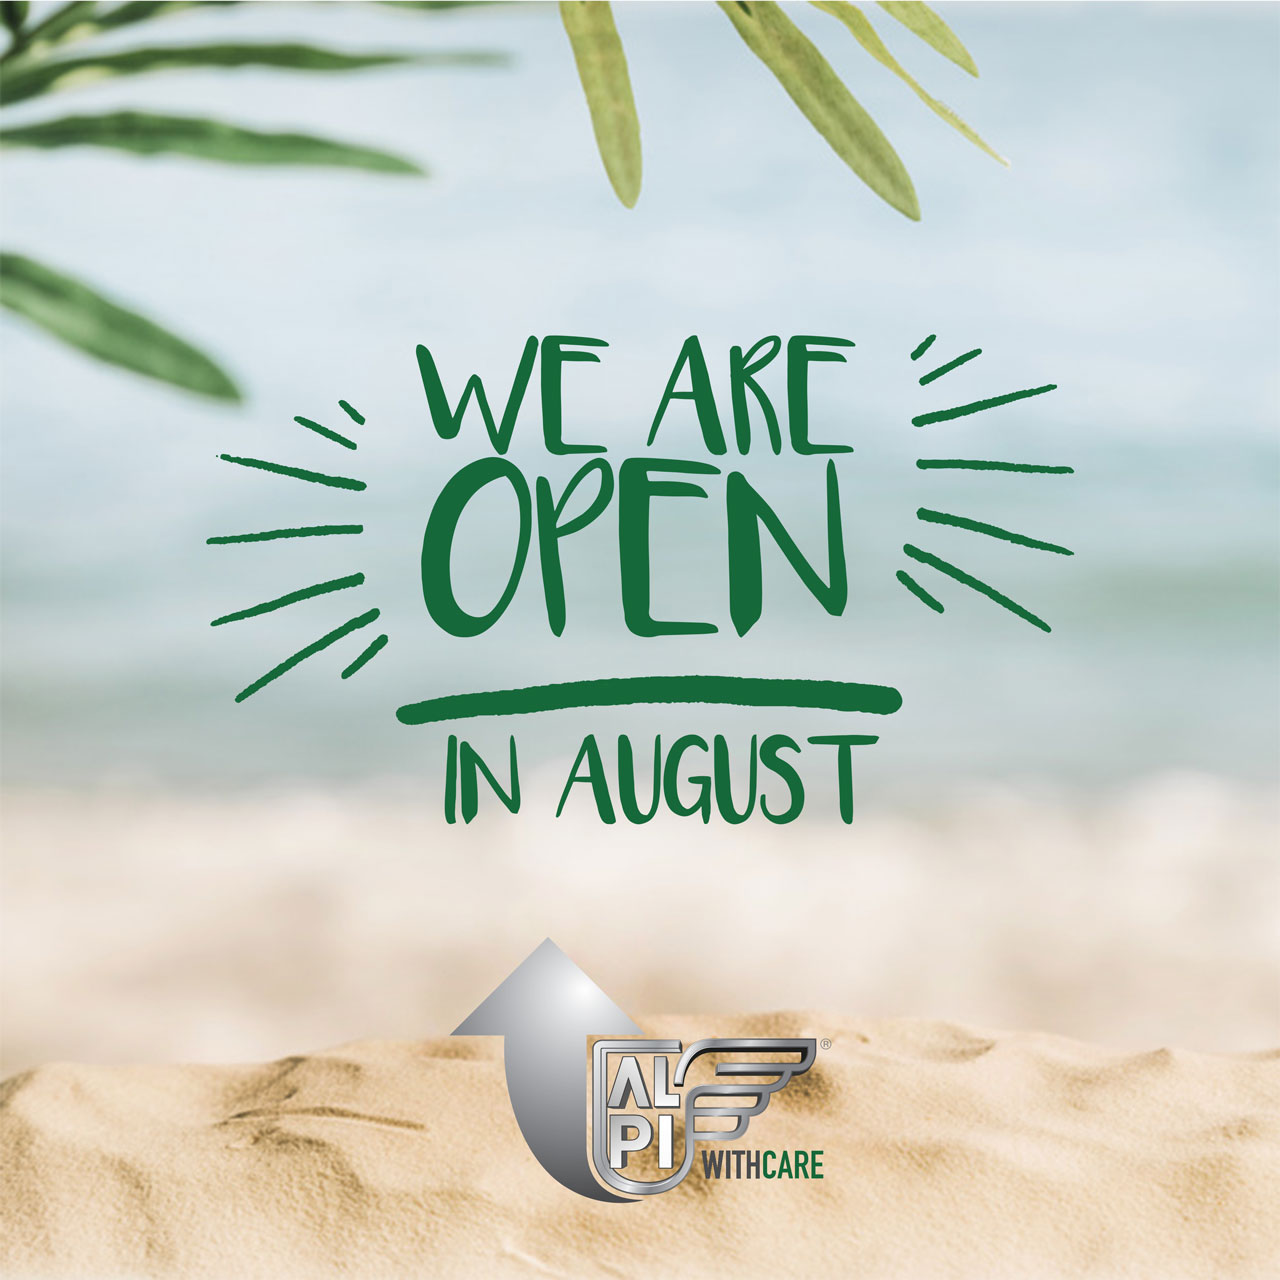 We are open in August